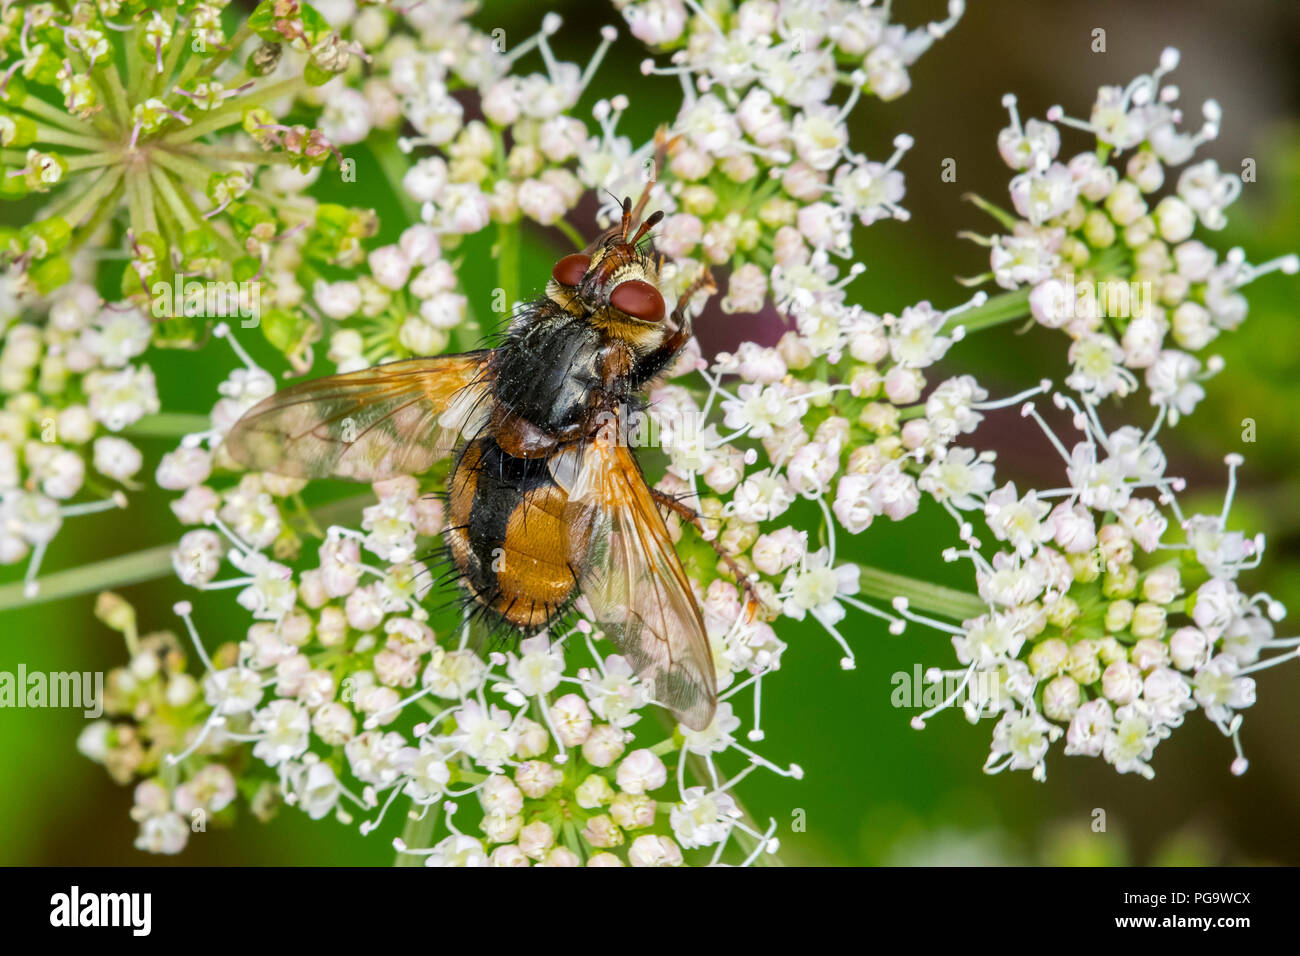 Parasite fly / tachinid fly / Tachina fera feeding on nectar from umbellifer flower in summer Stock Photo